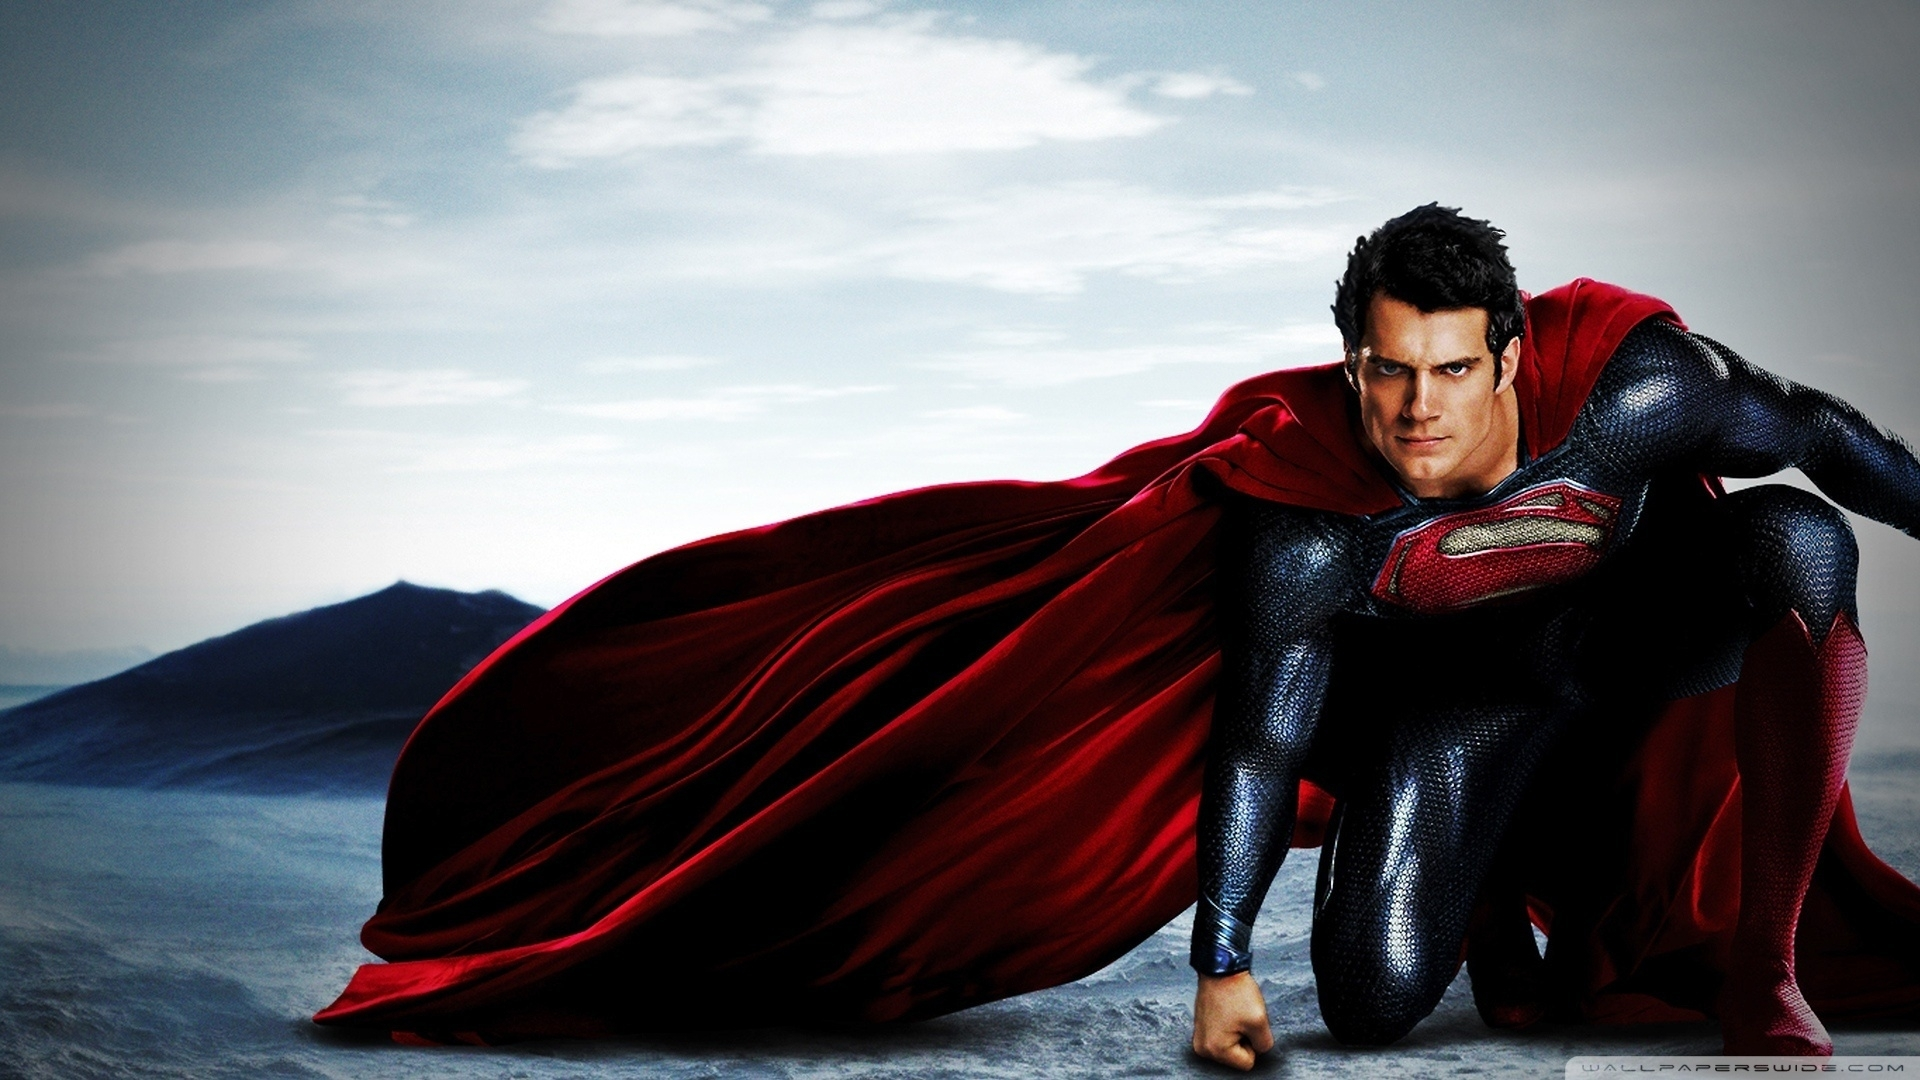 wallpaperswide ❤ man of steel hd desktop wallpapers for 4k